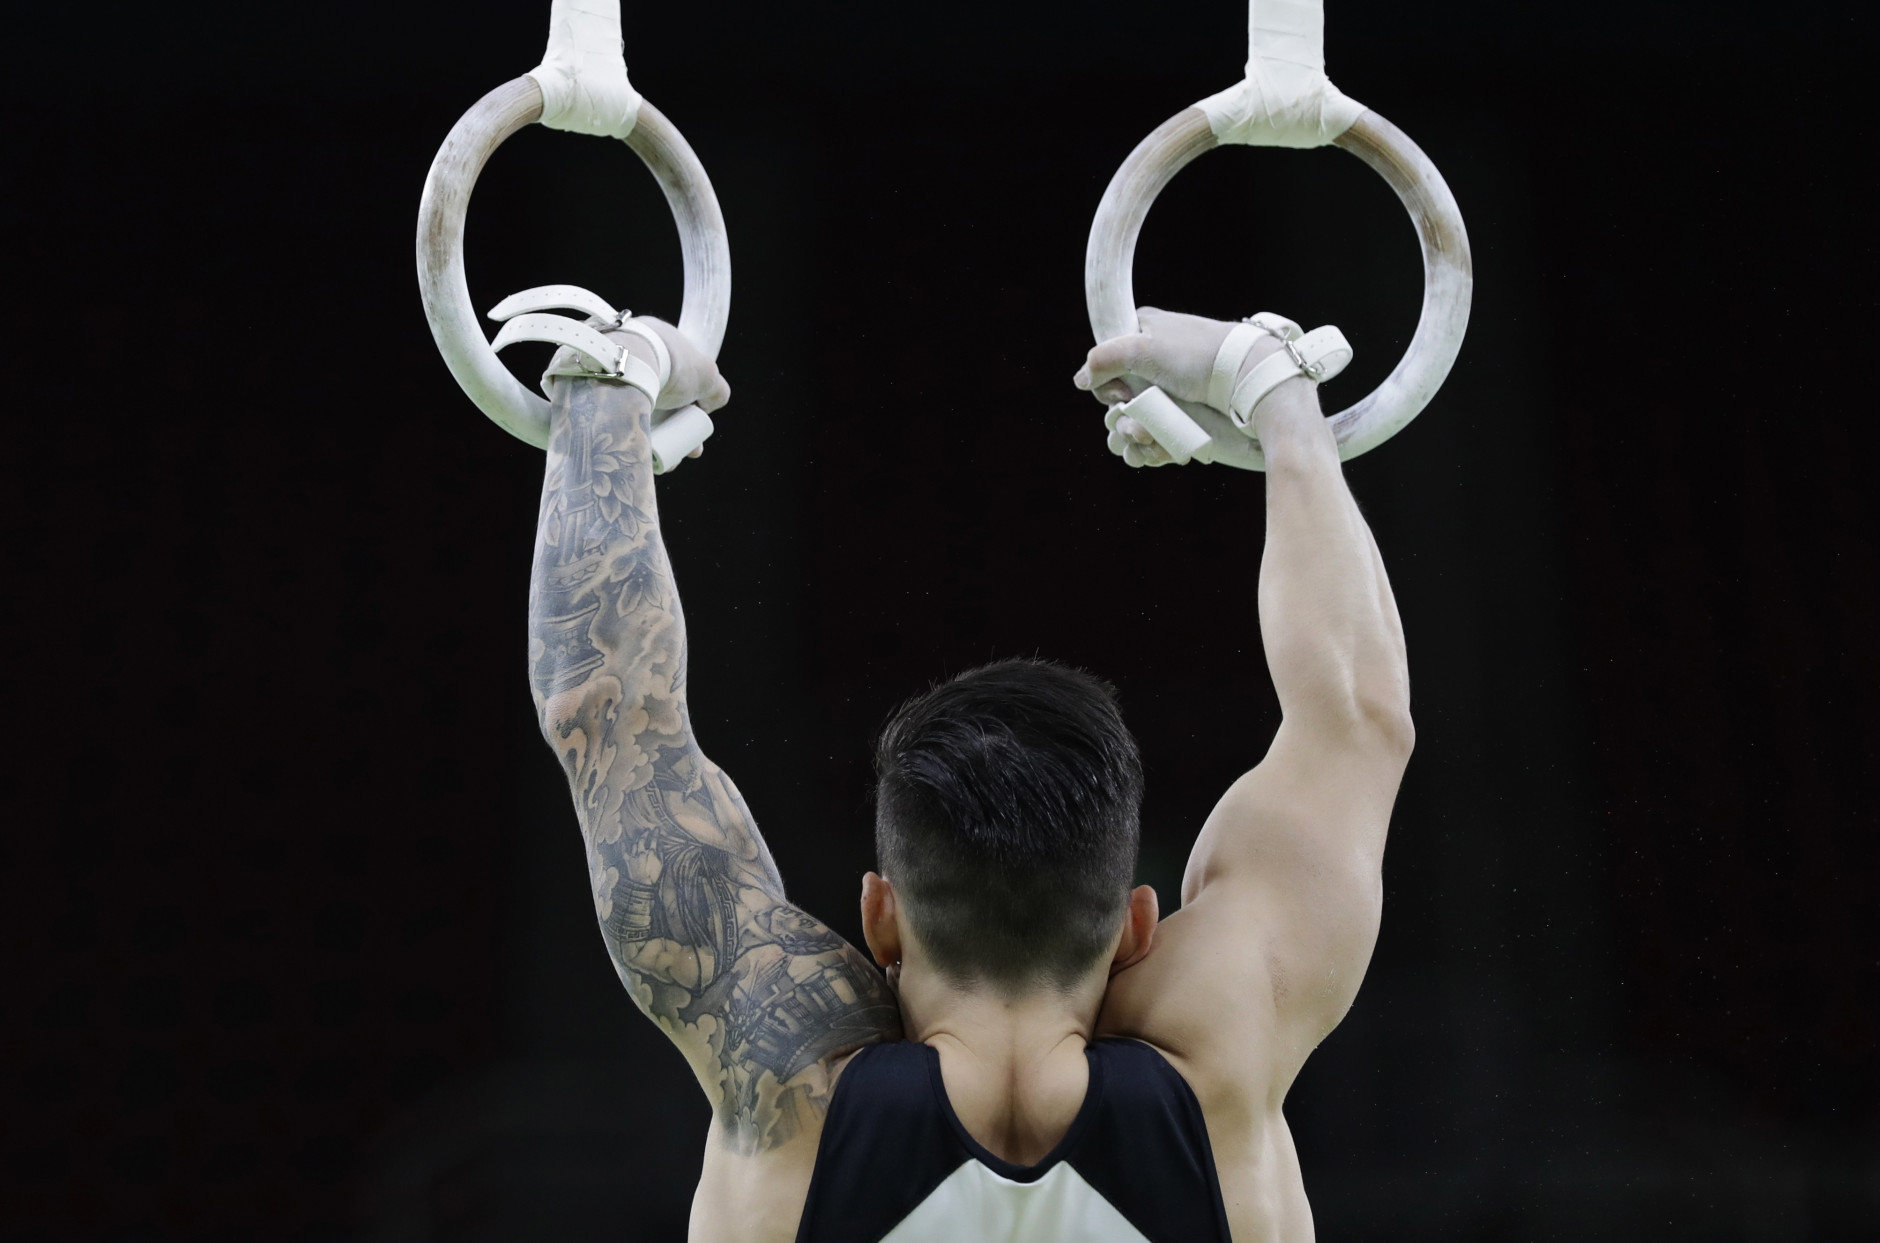 German gymnast Marcel Nguyen trains on the rings ahead of the 2016 Summer Olympics in Rio de Janeiro, Brazil, Wednesday, Aug. 3, 2016. (AP Photo/Rebecca Blackwell)